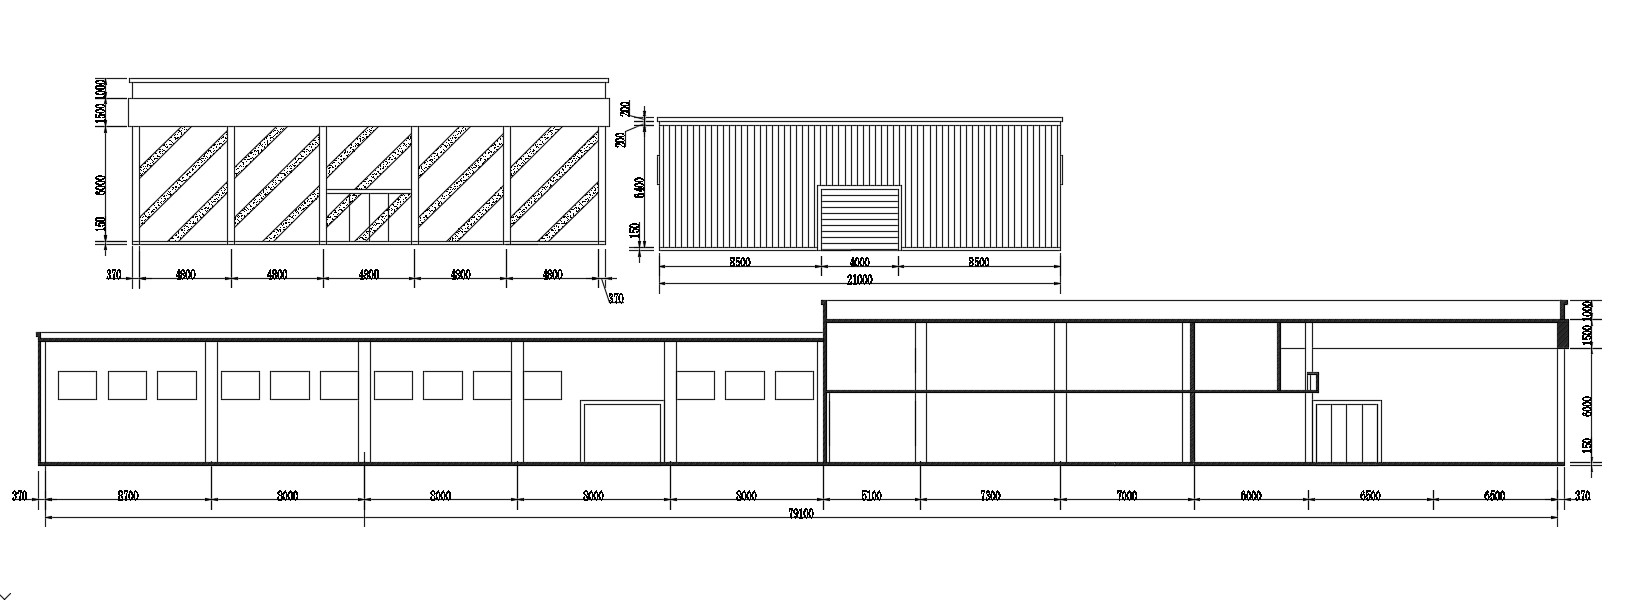 Simple Elevation Of factory AutoCAD File Free Download